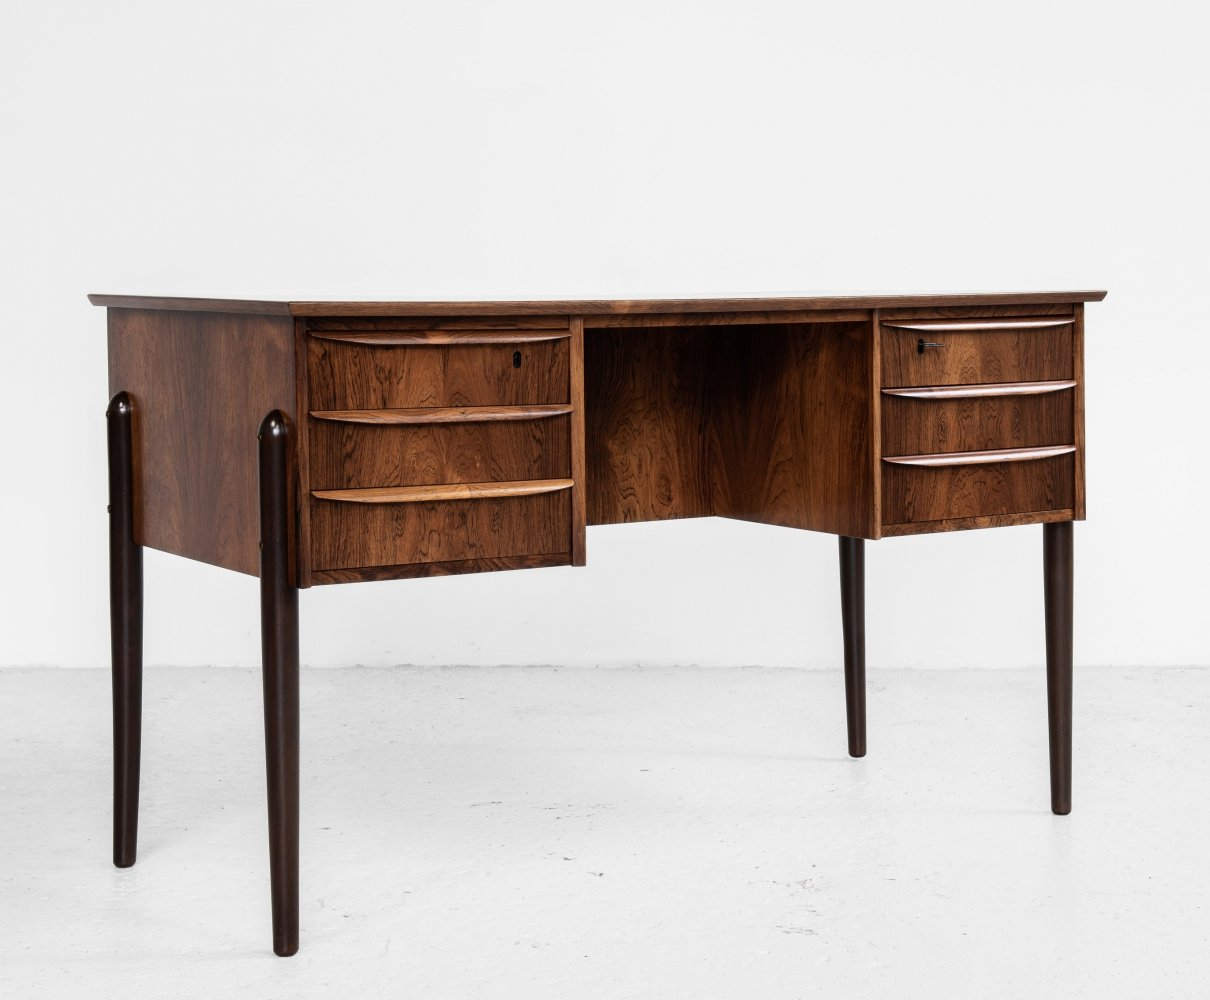 Midcentury compact Danish desk in rosewood with 2x3 drawers, 1960s